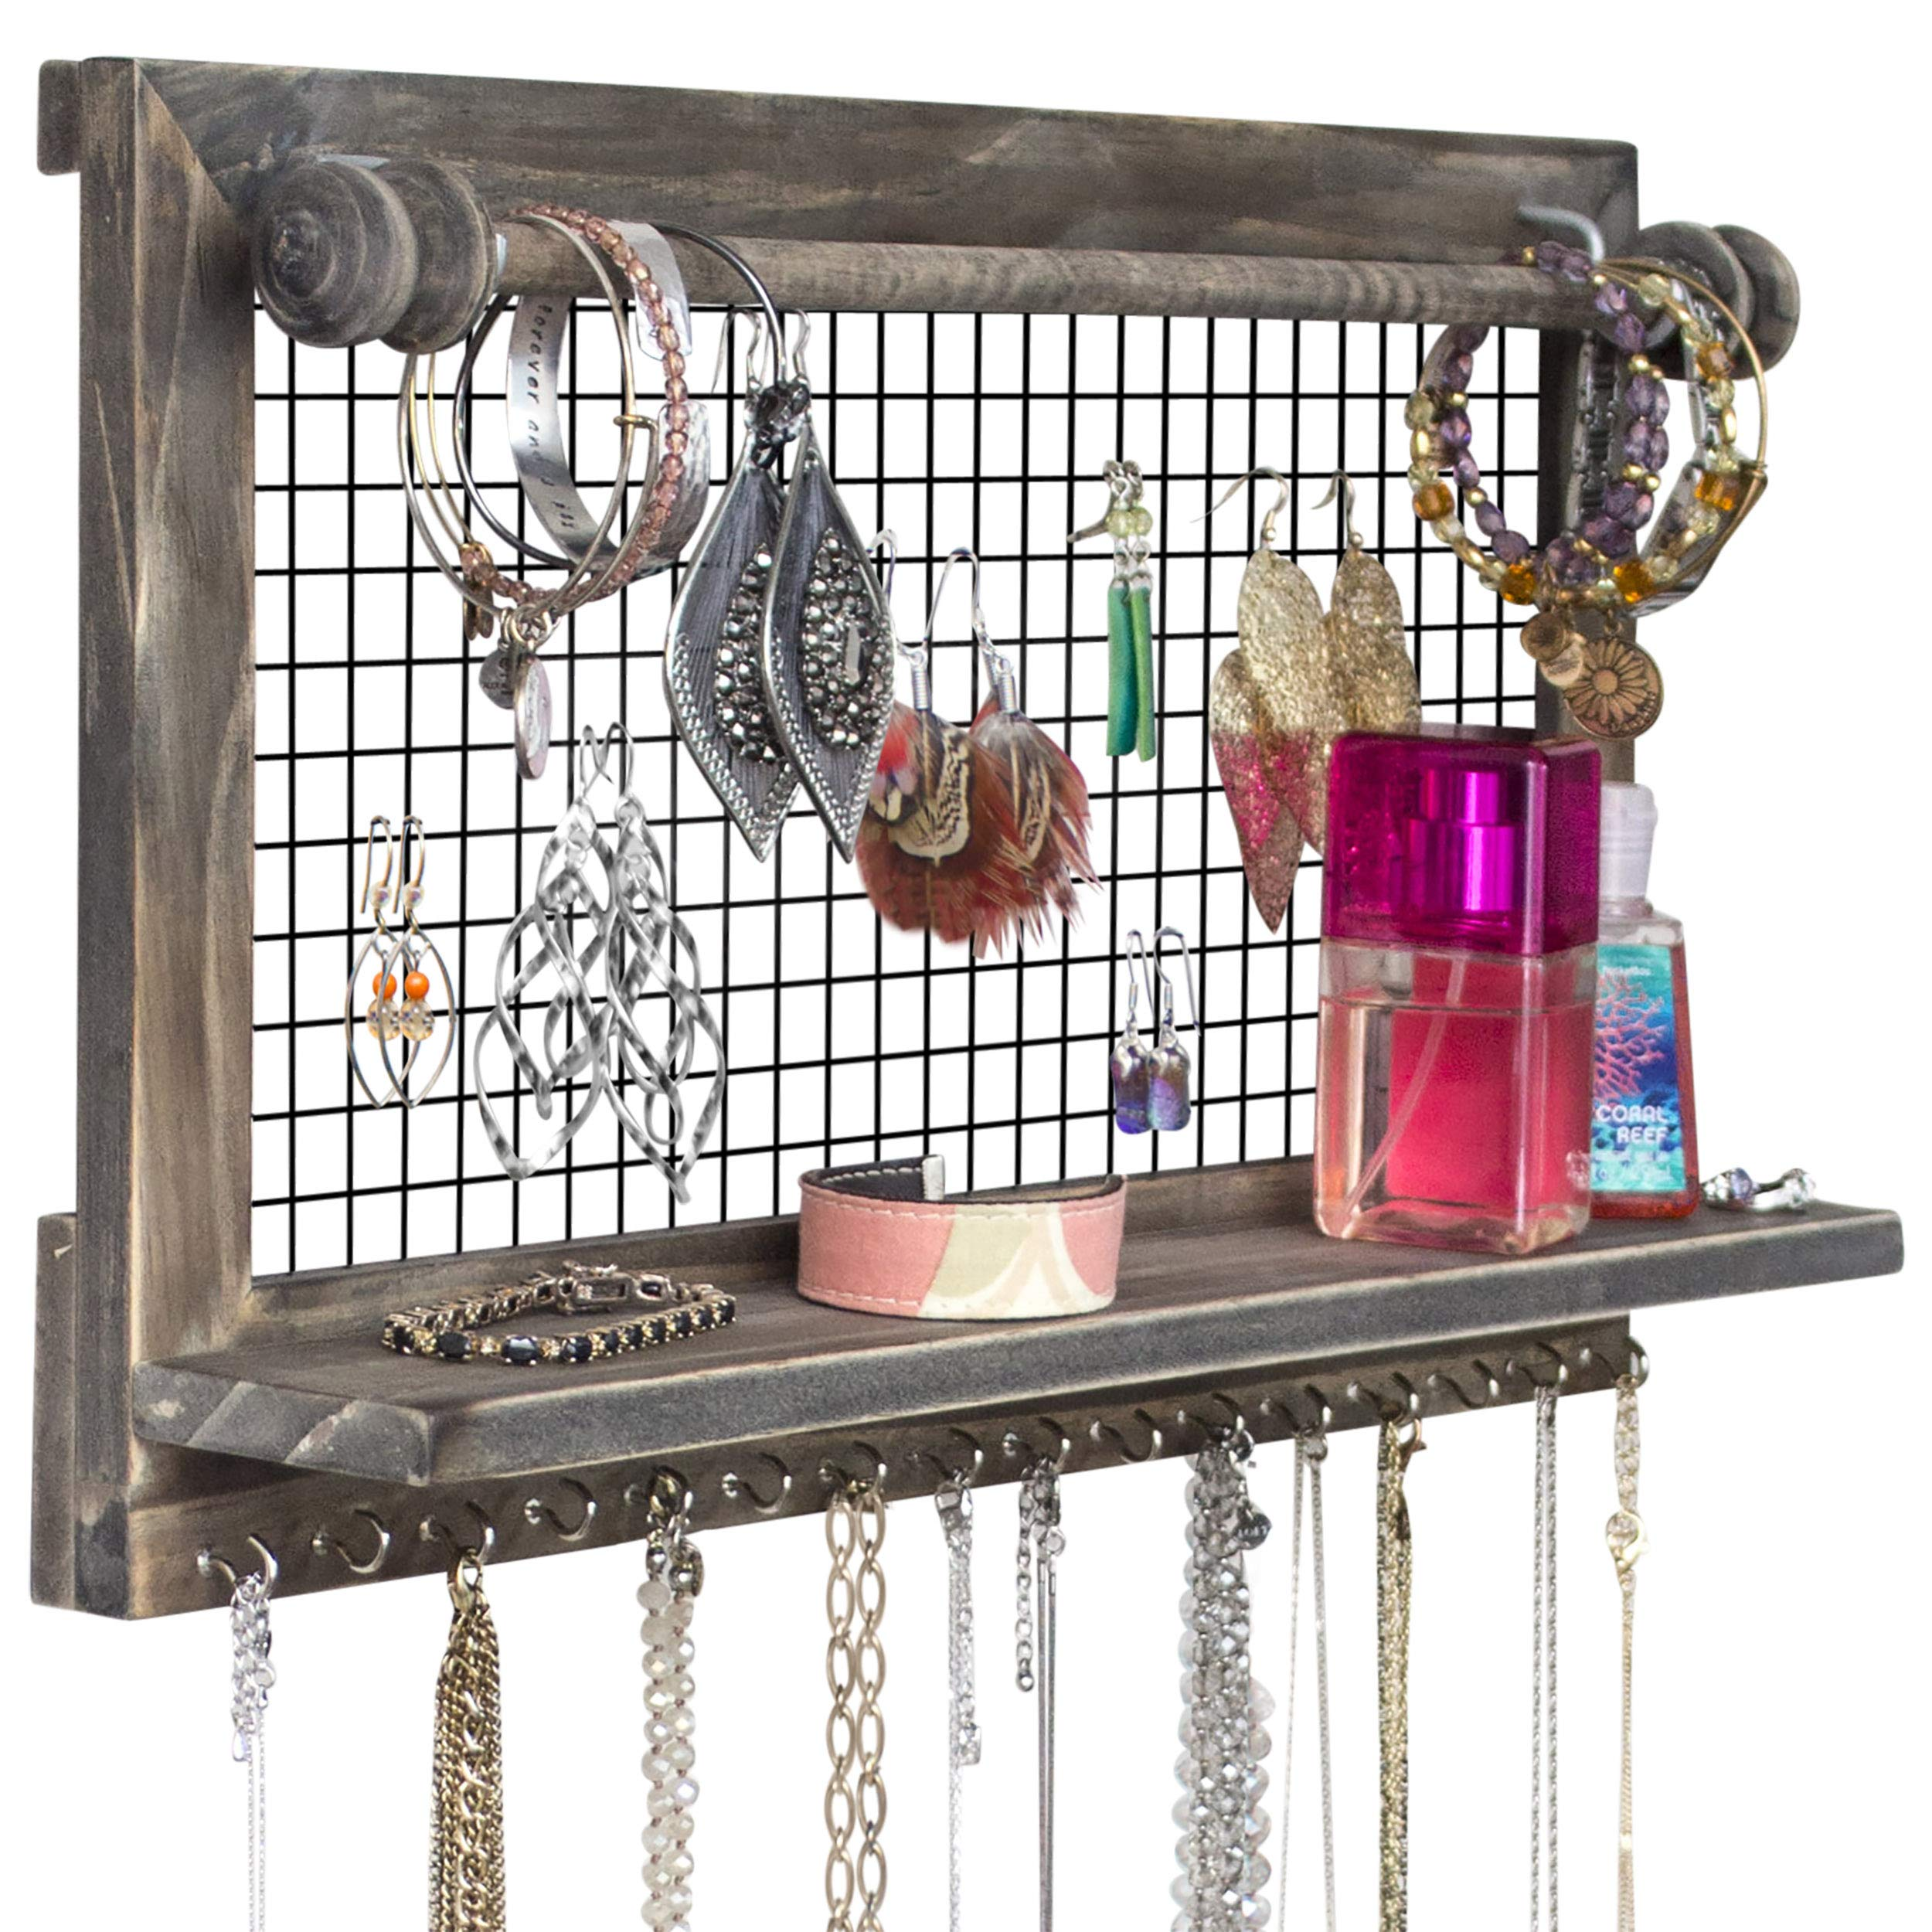 Rustic Jewelry Organizer with Bracelet Rod Wall Mounted l Wooden Wall Mount Holder for Earrings, Necklaces, Bracelets, and Many Other Accessories SoCal Buttercup by SoCal Buttercup